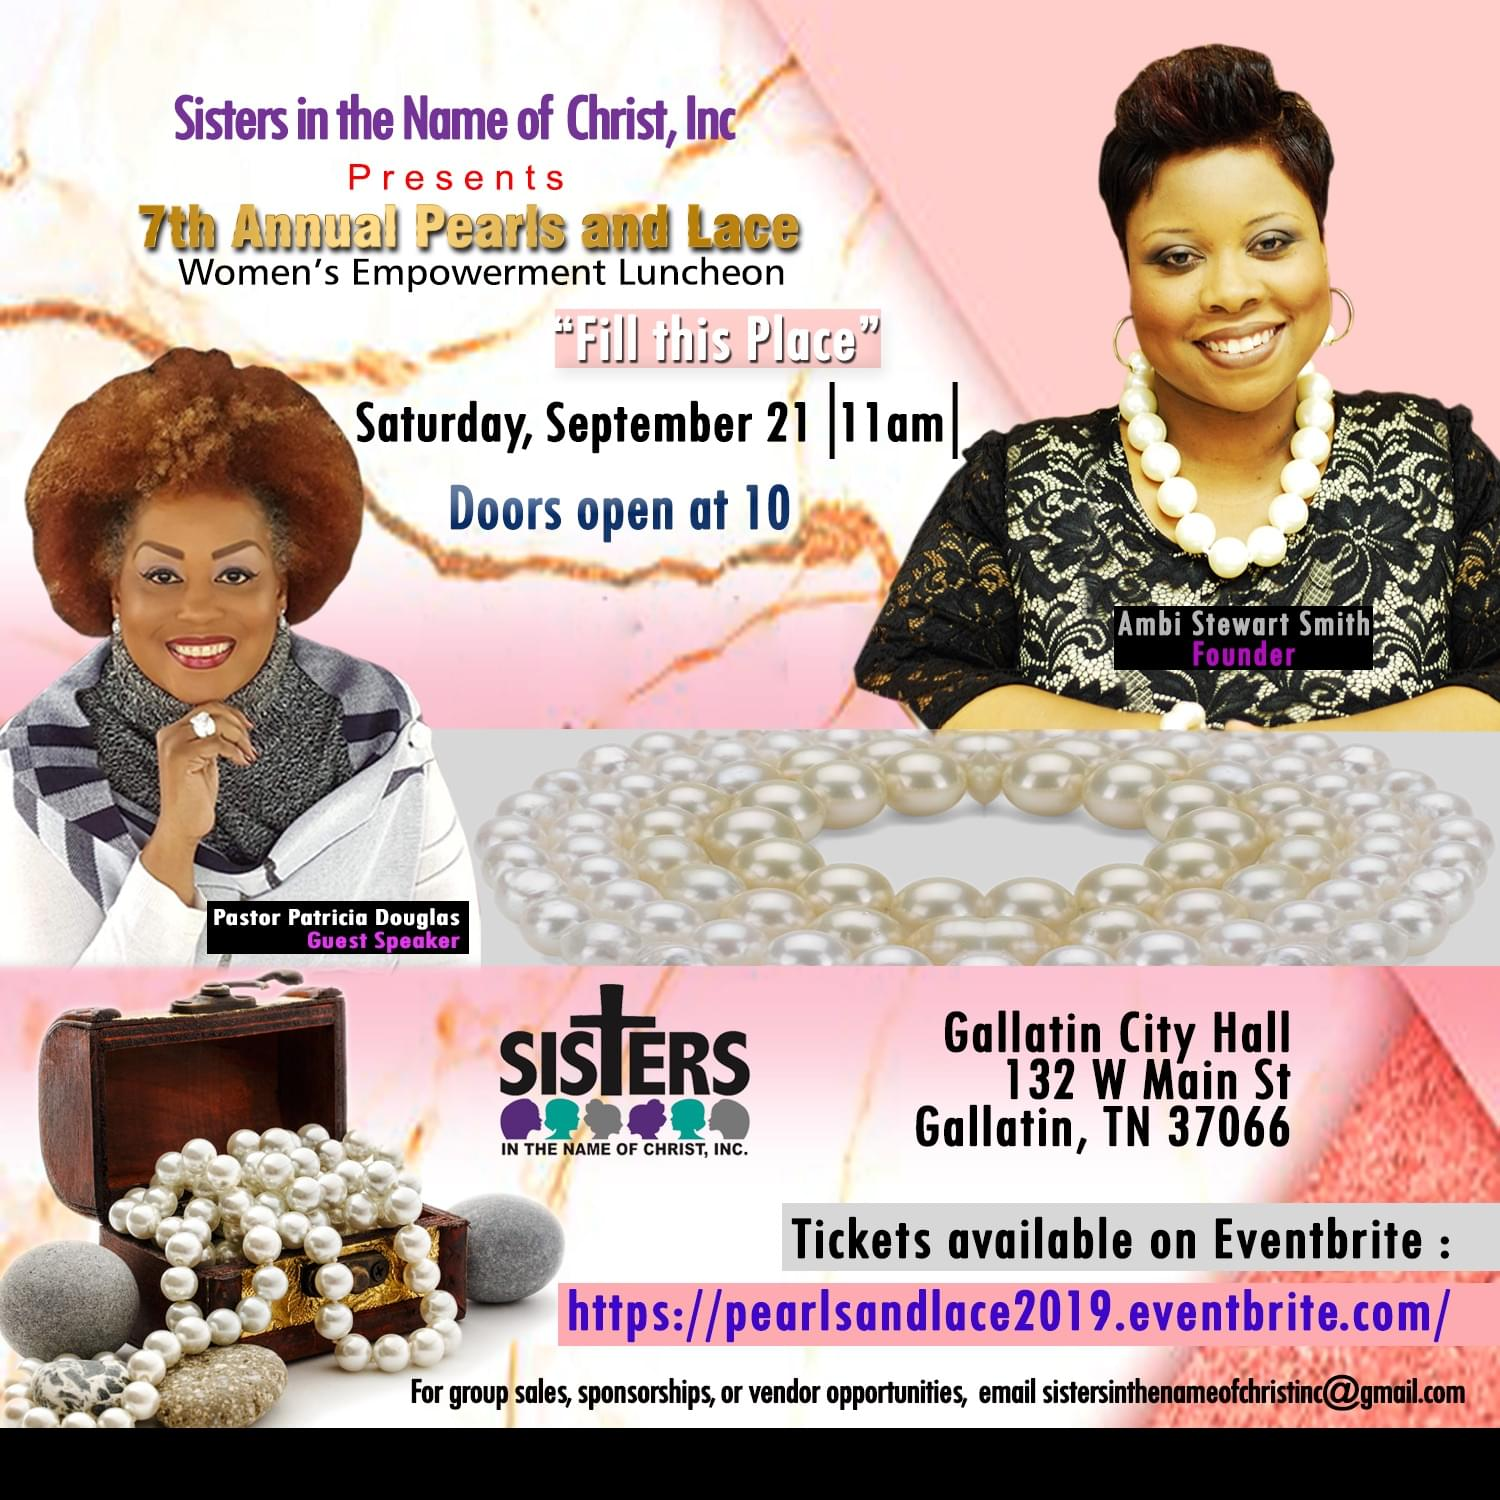 7th Annual Pearls & Lace Women's Empowerment Luncheon